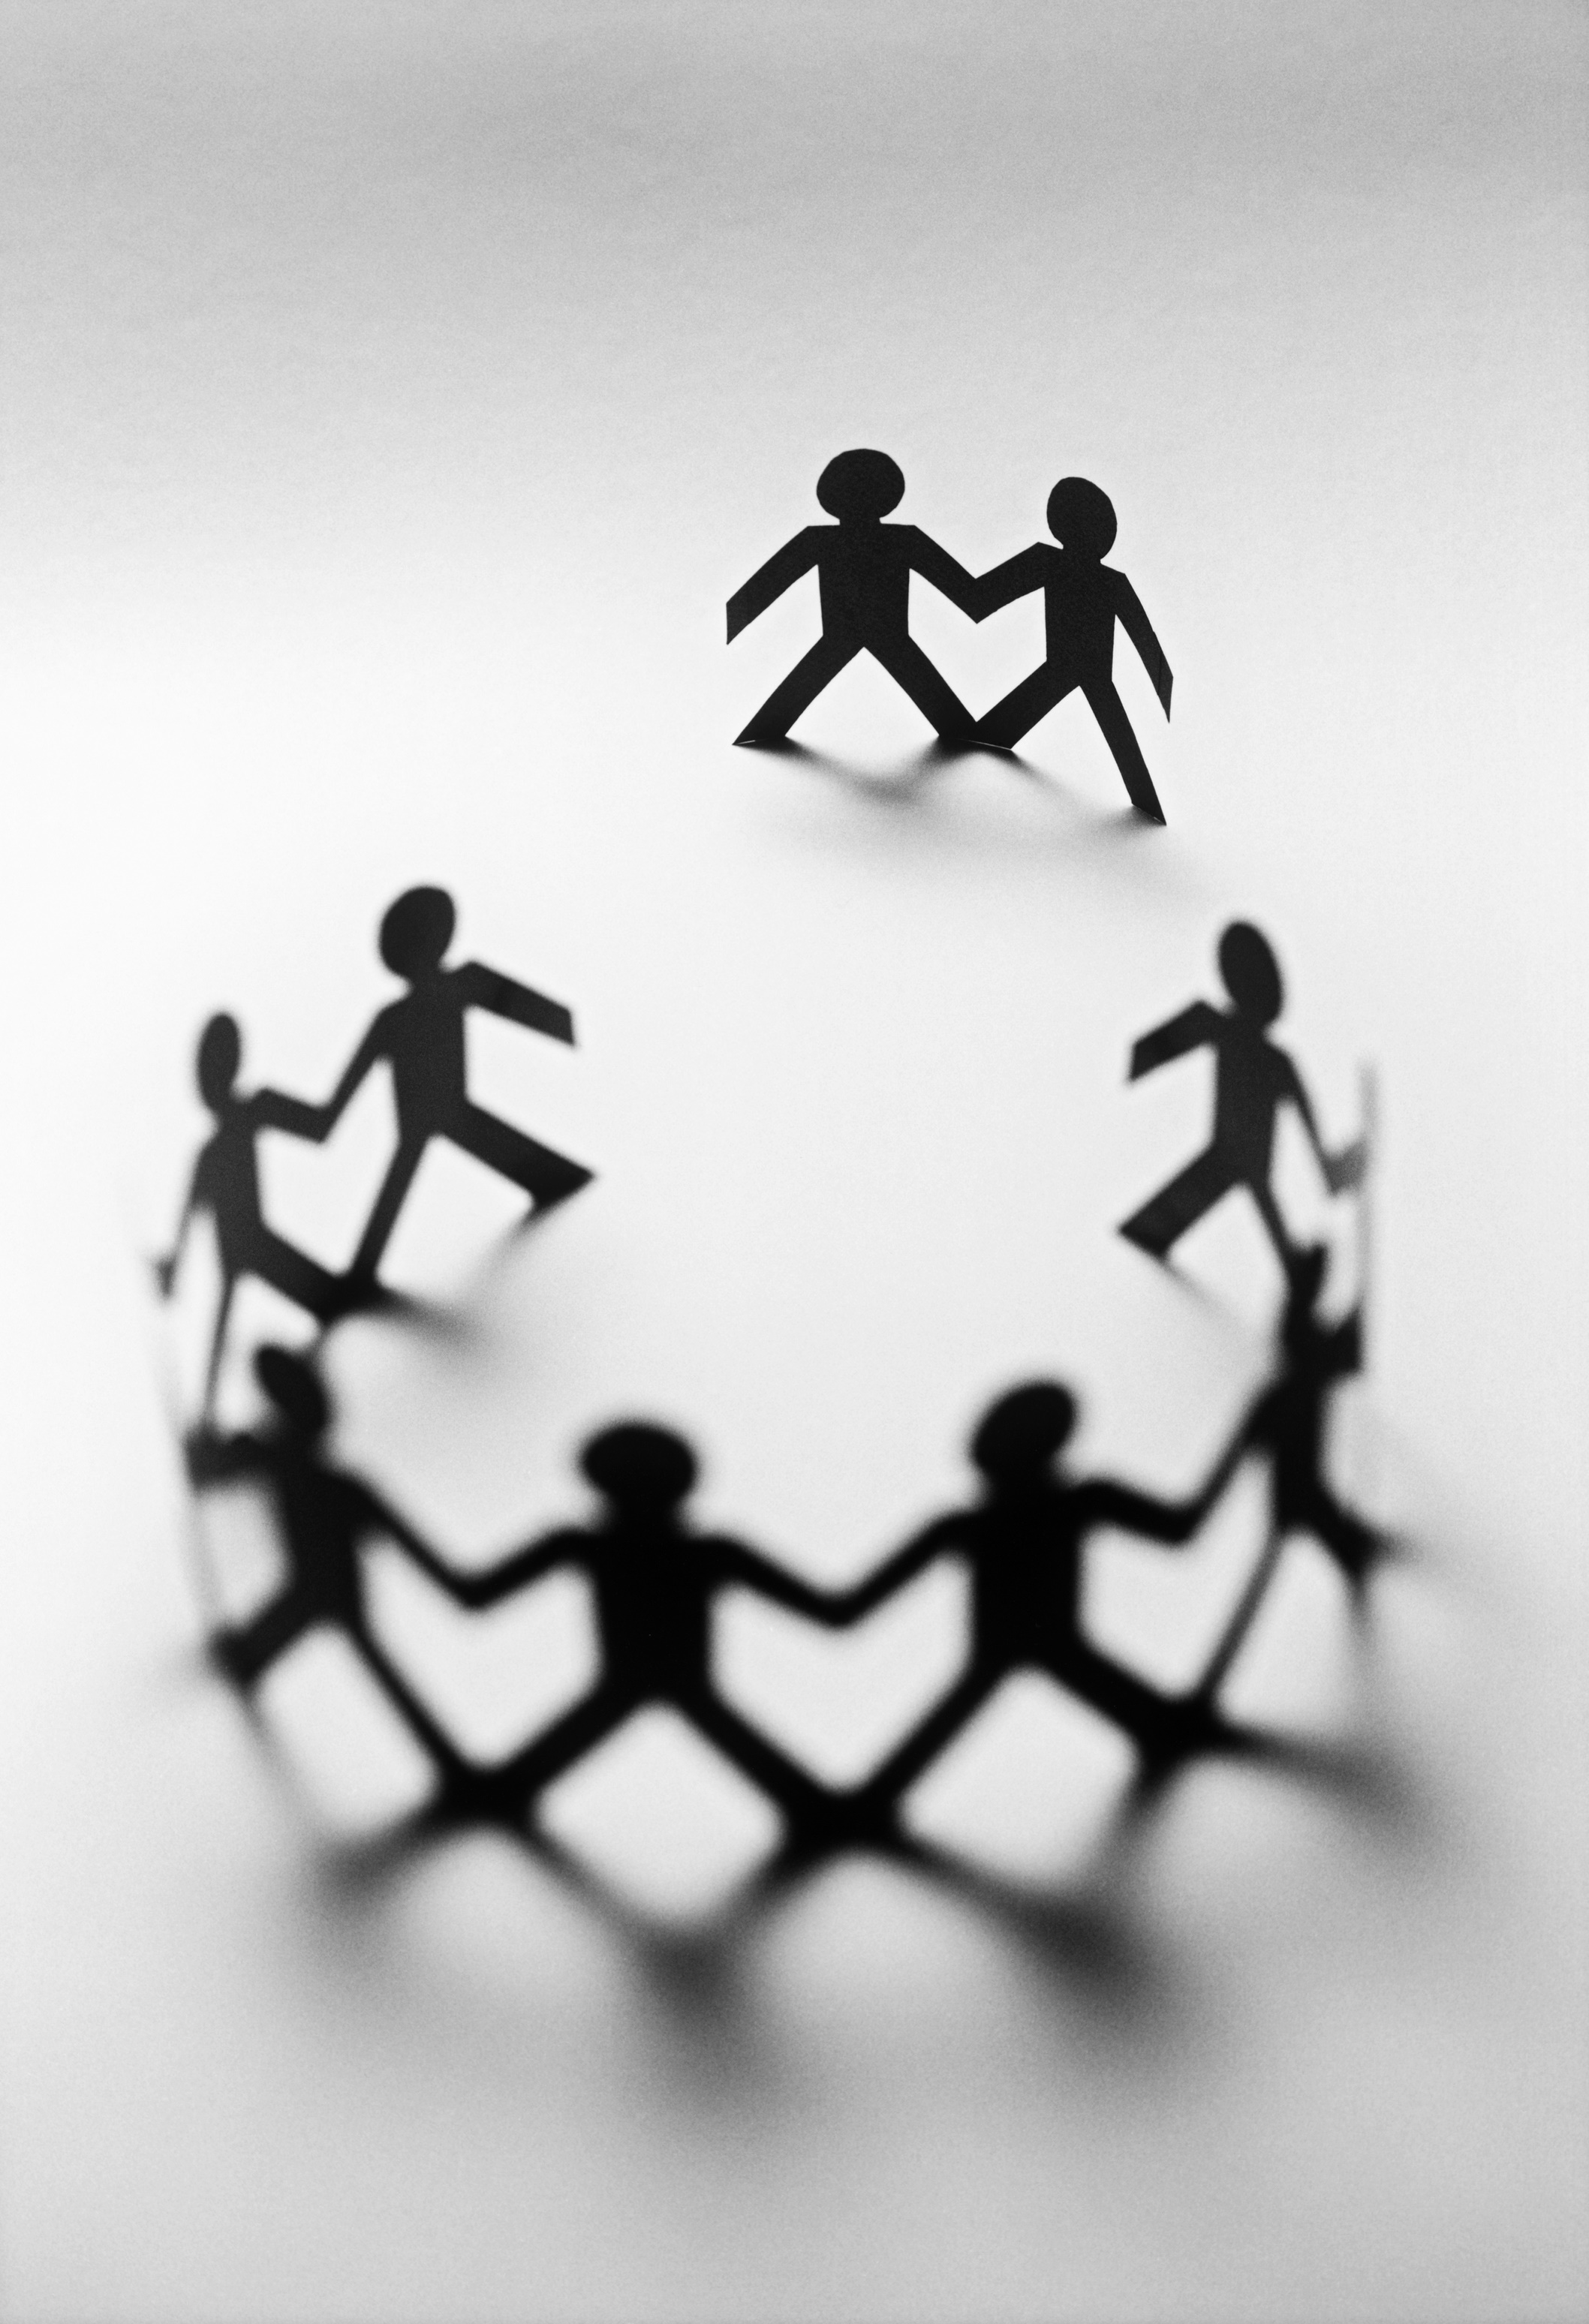 Paper cut outs of people in a circle